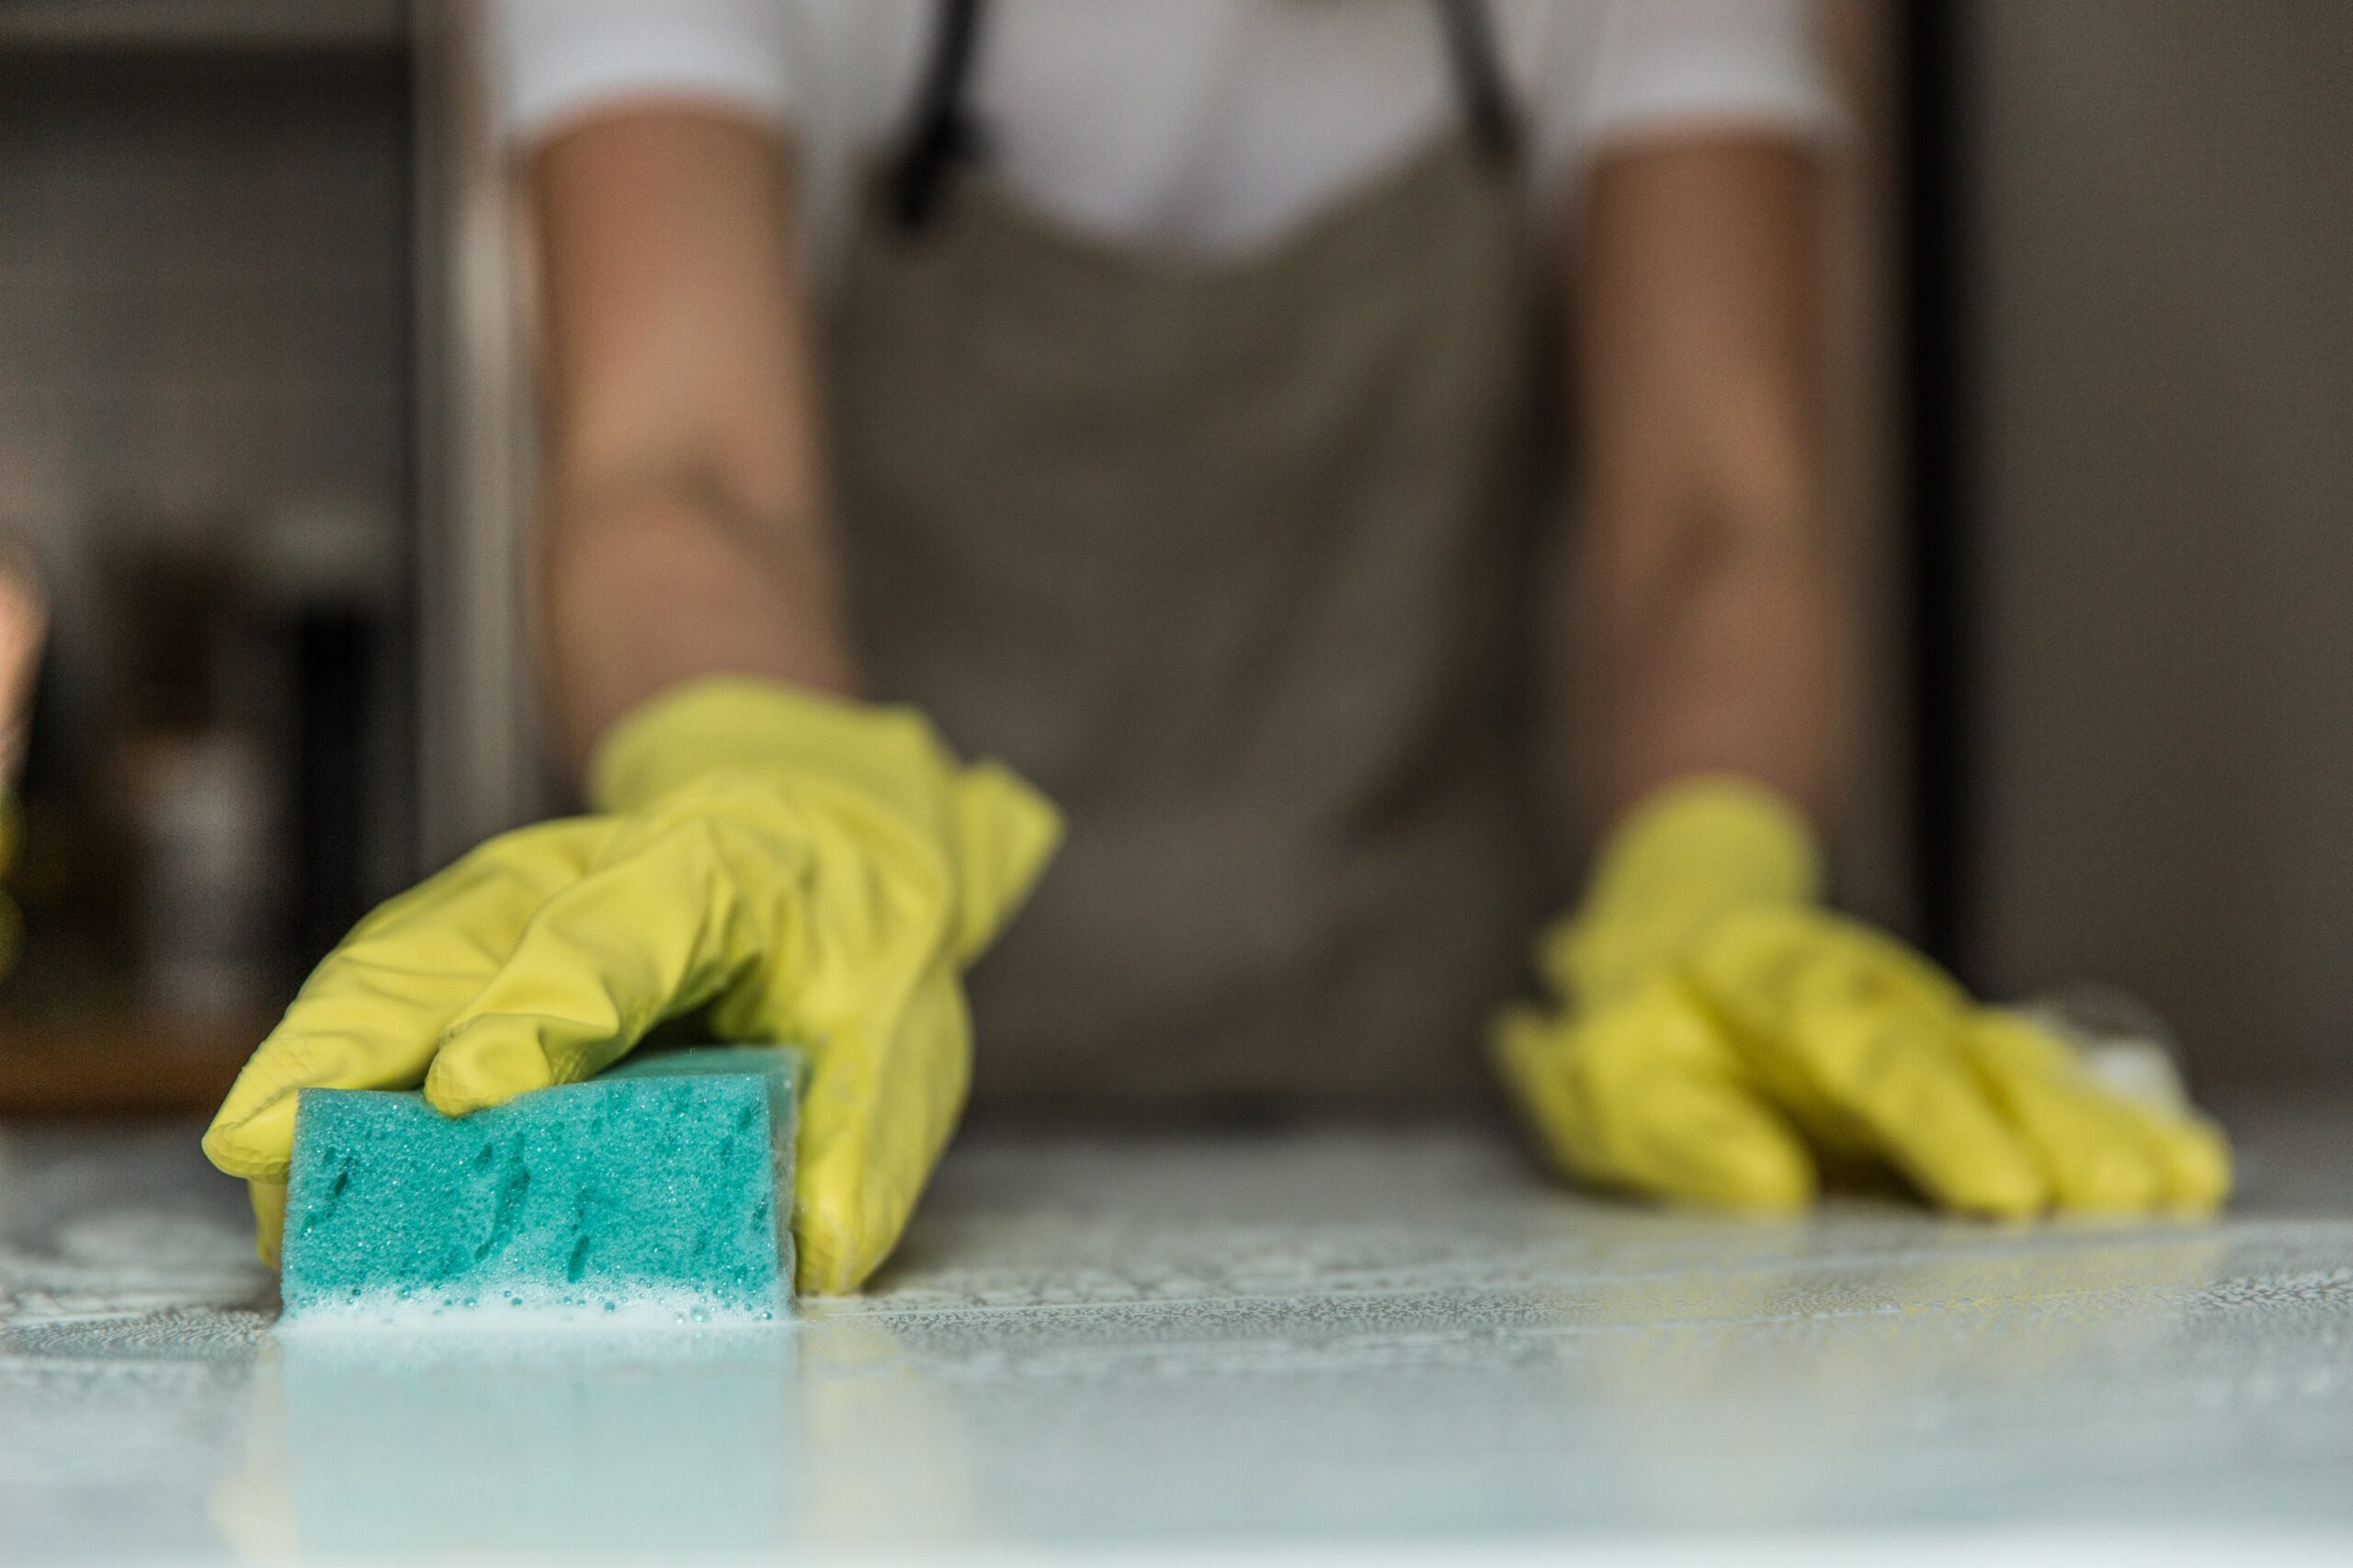 bond cleaning services gold coast image 32